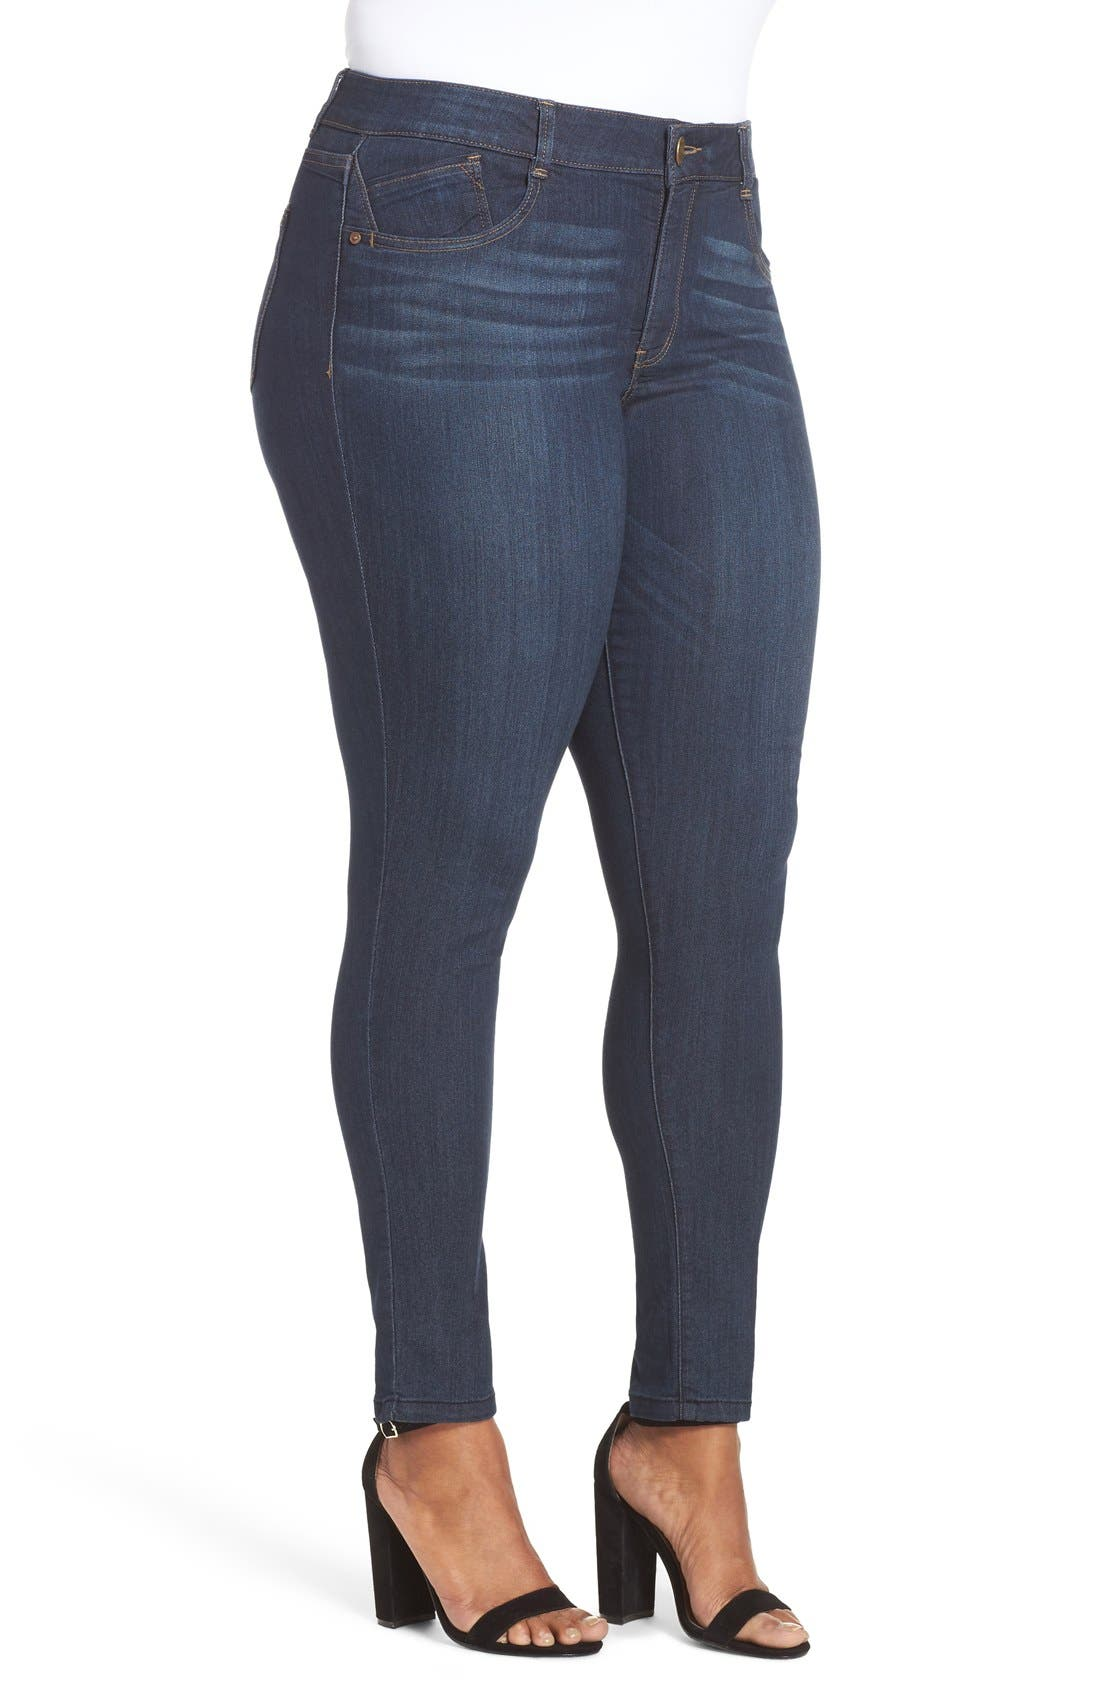 Ab-solution Stretch Skinny Jeans,                             Alternate thumbnail 7, color,                             INDIGO